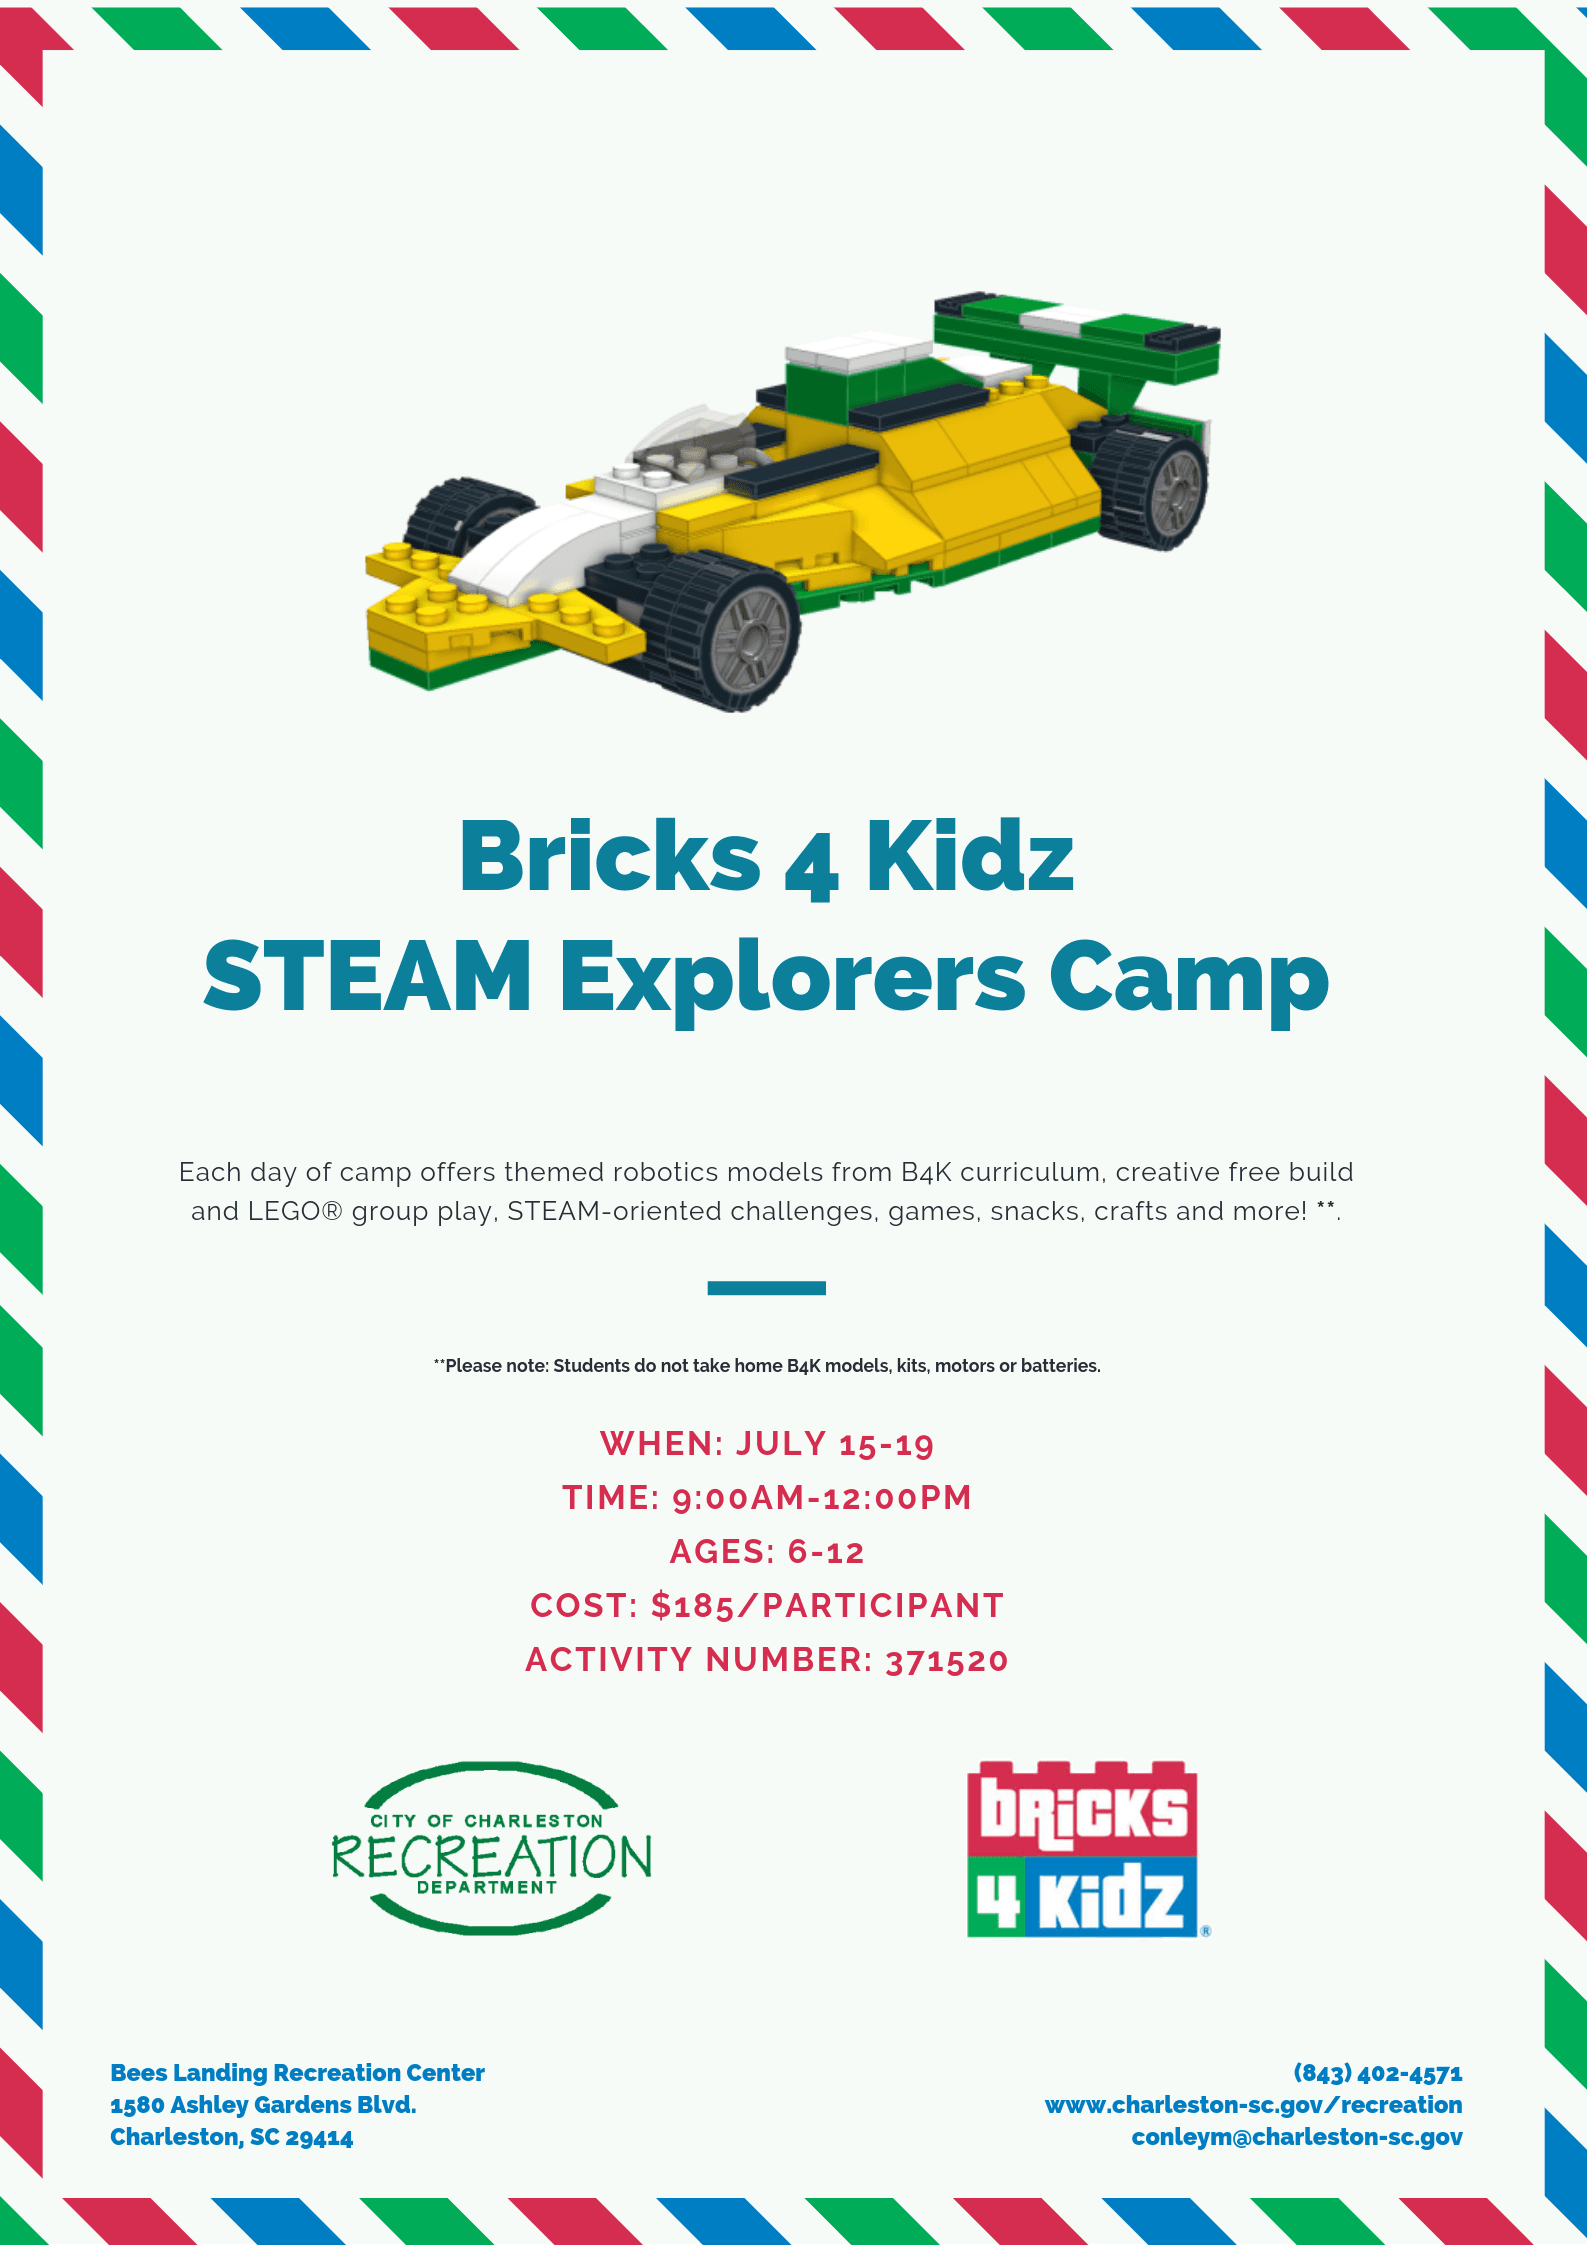 Bricks 4 Kidz Camp STEAM